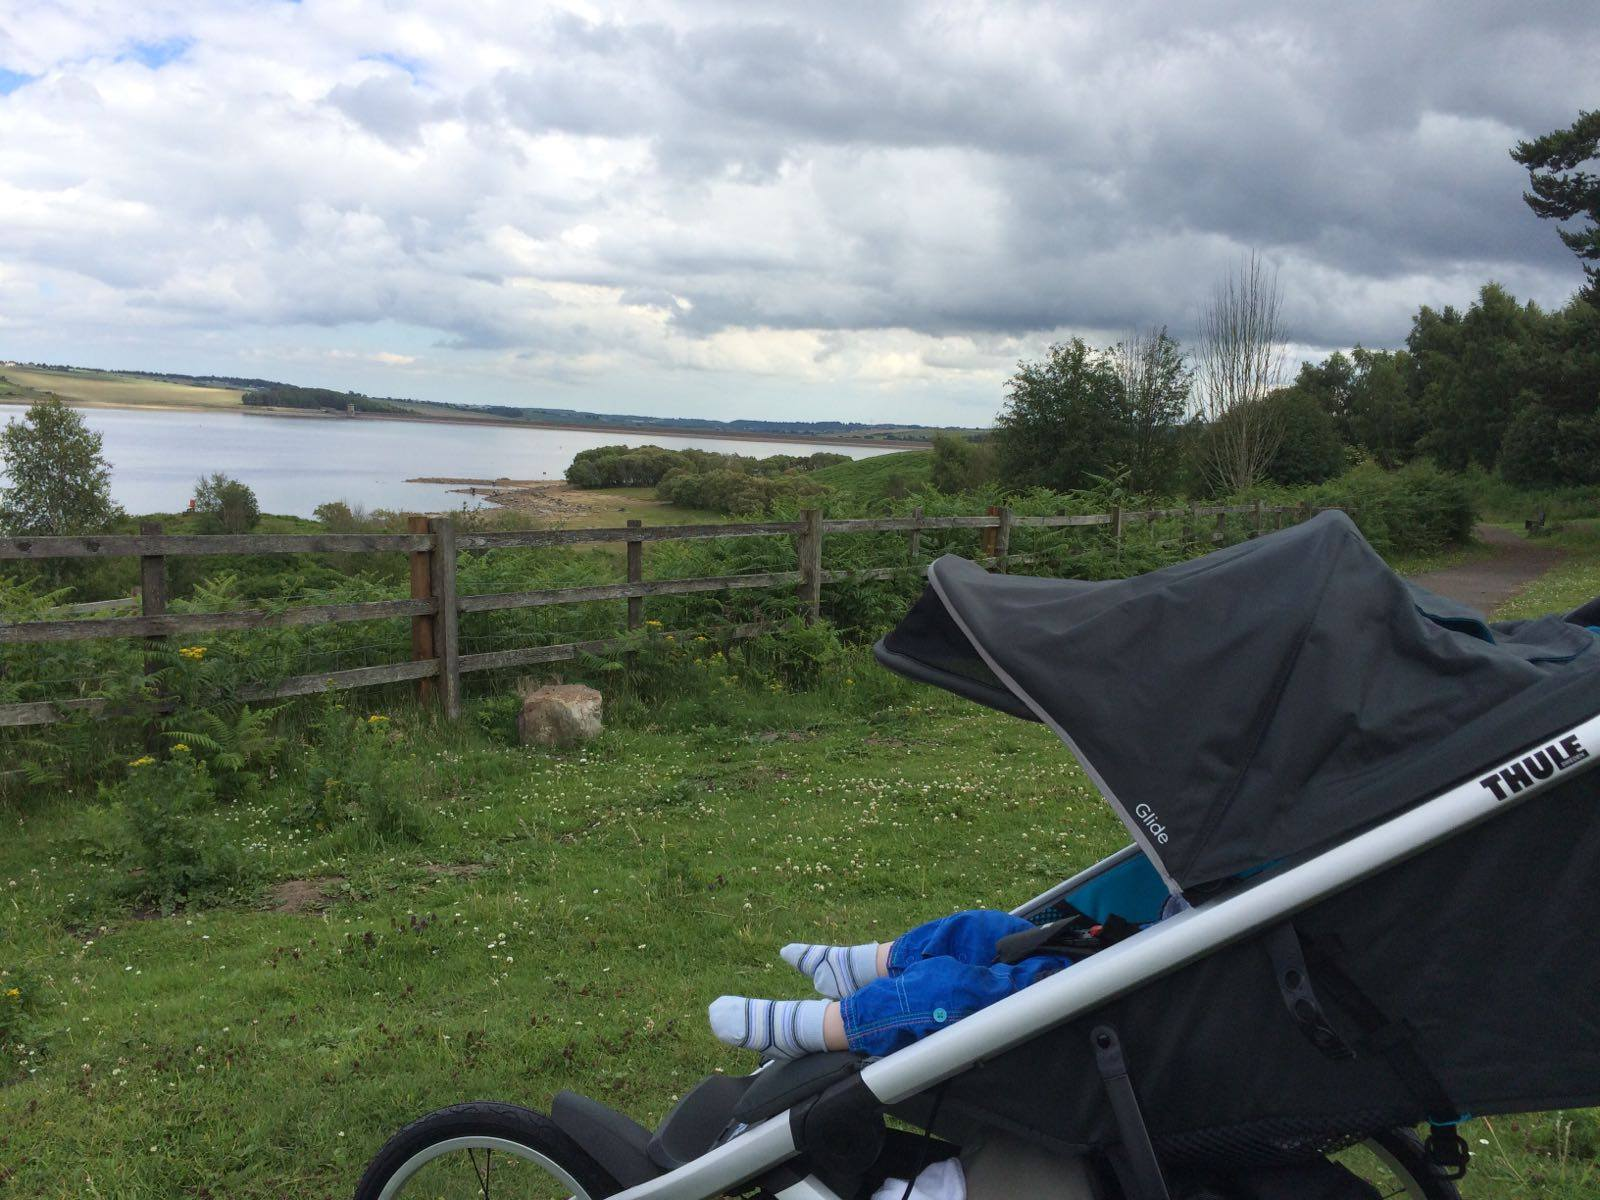 13 of the best pushchair-friendly walks around North East England as recommended by local parents - derwent reservoir